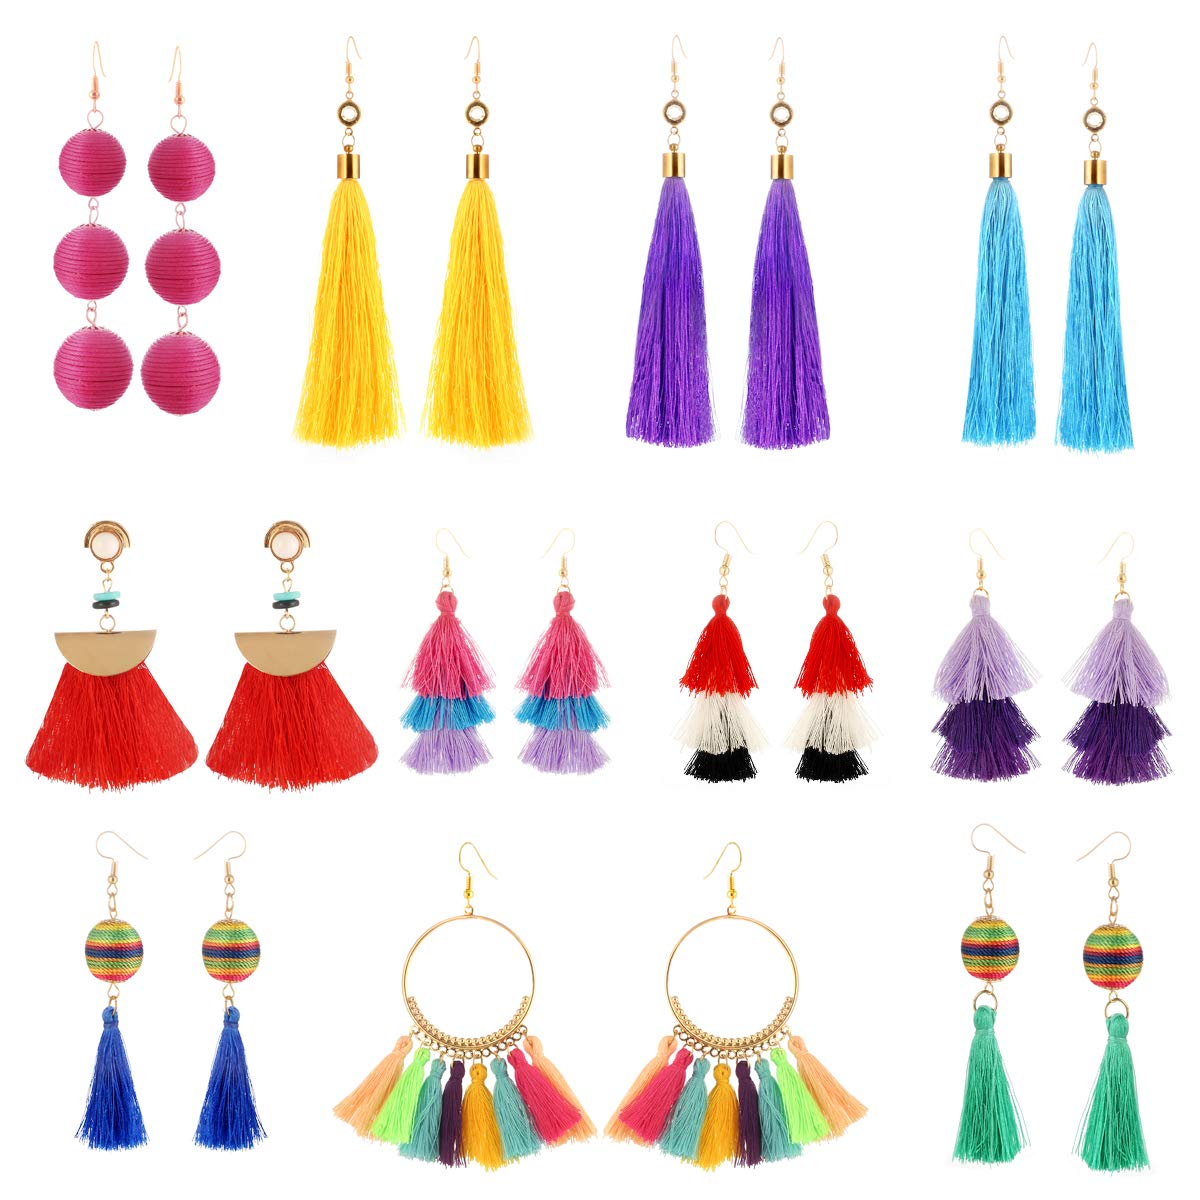 11 Pairs Colorful Long Layered Thread Ball Dangle Earrings Yellow Red Turquoise Tassel Hoop Fringe Bohemian Tiered Tassel Drop Earrings Soriee Stud Earrings Gift Set for Girls Women luoyue B07FS2KZJ5_US